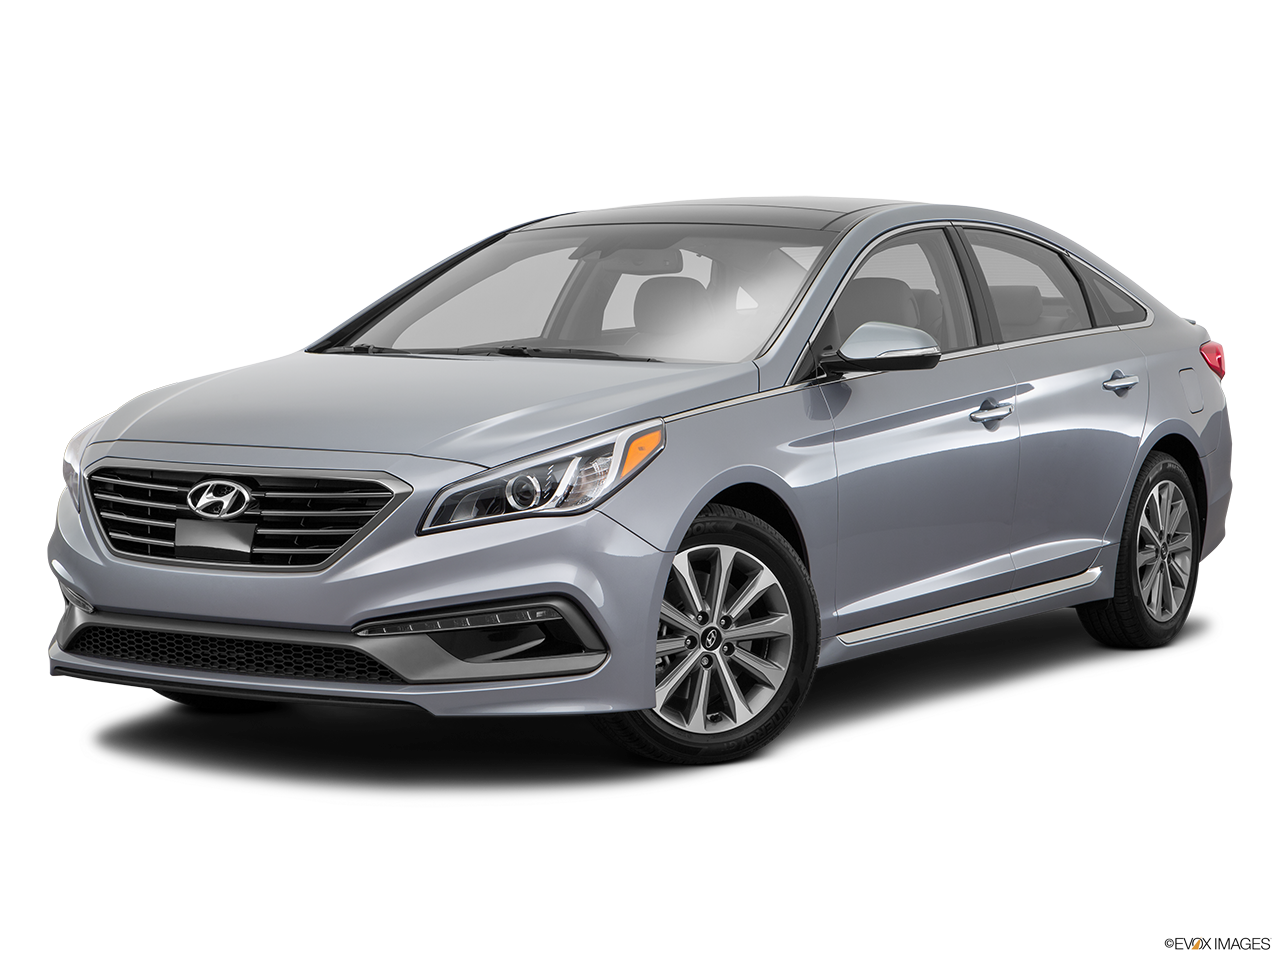 2018 Hyundai Sonata Hybrid Redesign And Release Date together with 2010 Hyundai Sonata Overview C21824 together with 2012 Hyundai Sonata Black also 66615425 together with 2014 Hyundai Sonata White. on hyundai sonata limited